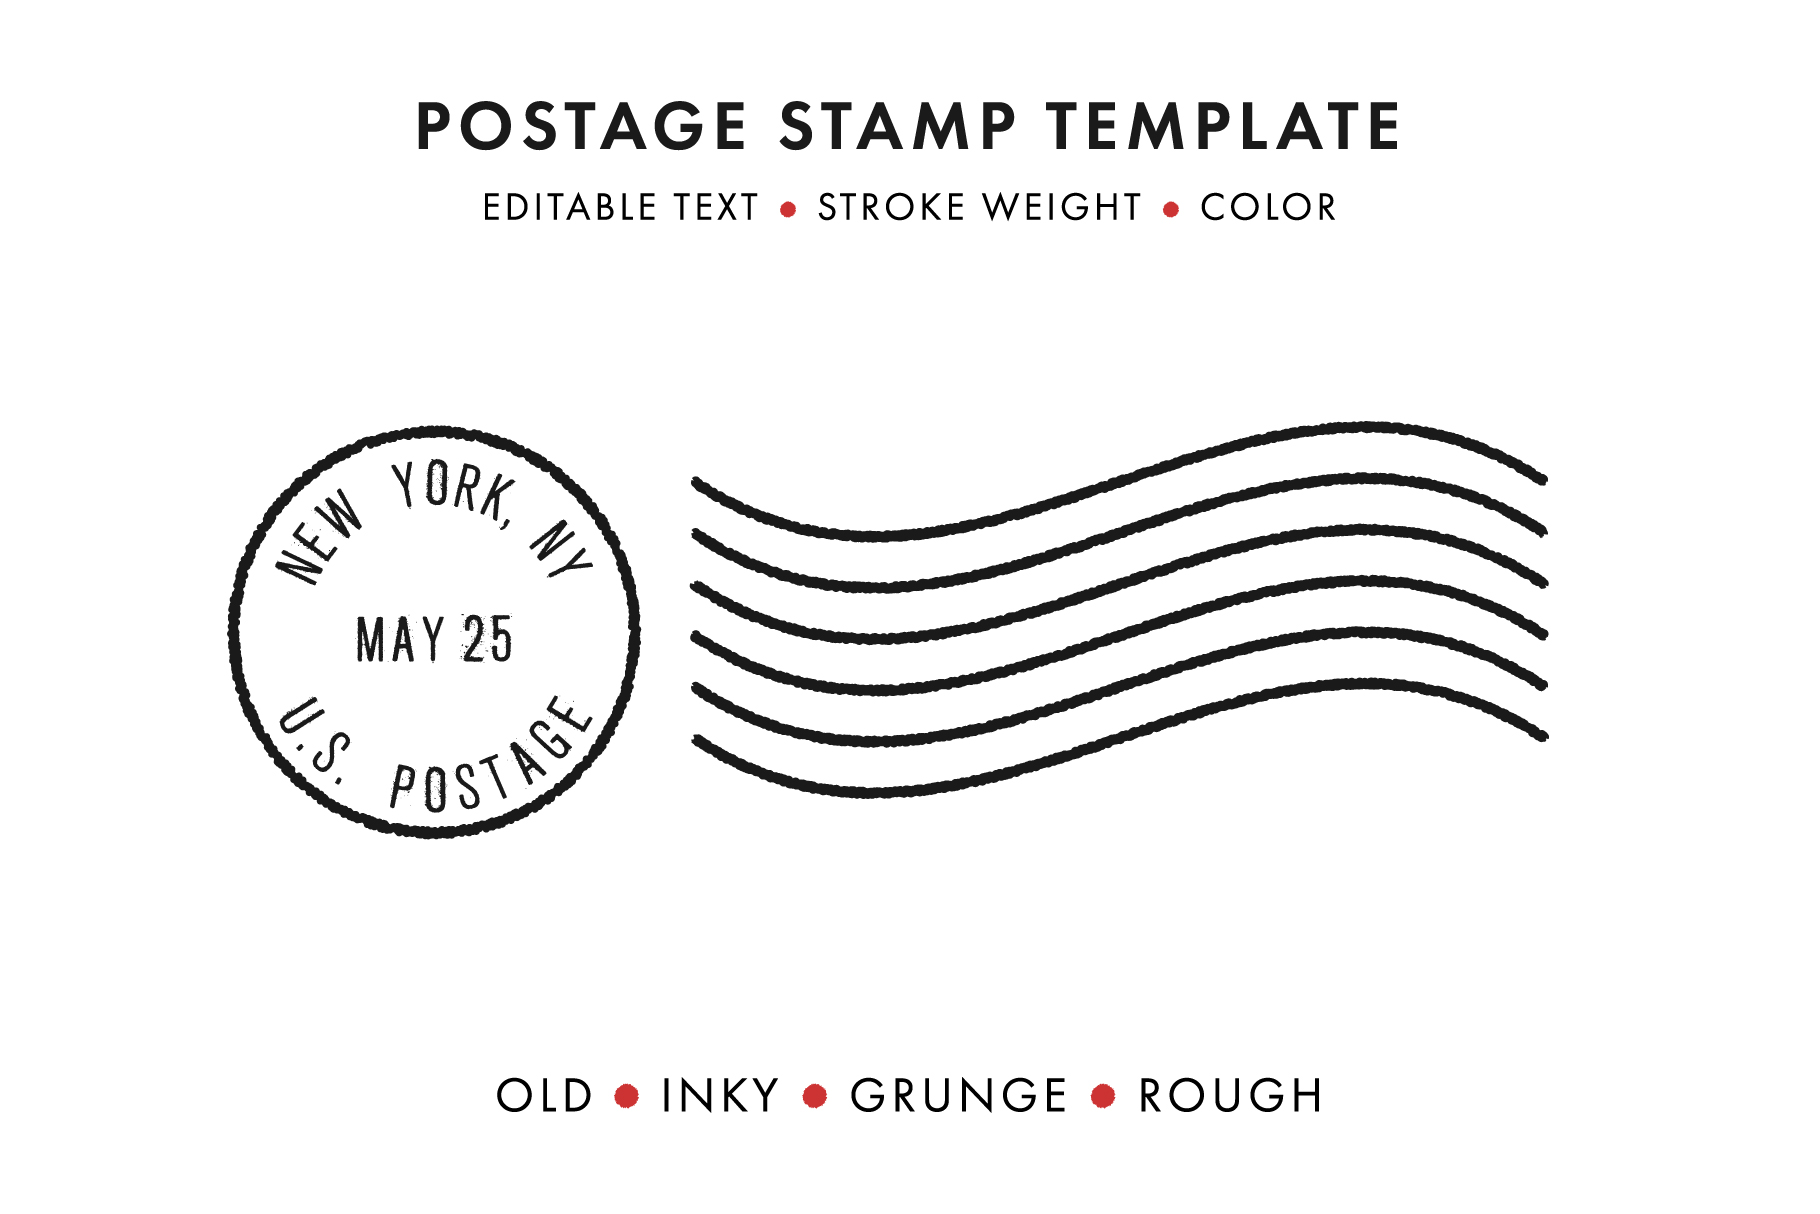 postage-stamp-inky  Th Of July Letter Template on 4th pf july, events templates, president's day templates, may day templates, camping templates, turkey day templates, health templates, hanukkah printable templates, st. patricks day templates, picnic templates, wedding templates, contest templates, pizza templates, birthday templates, books templates, games templates, teacher appreciation day templates, history templates, fashion templates, halloween templates,